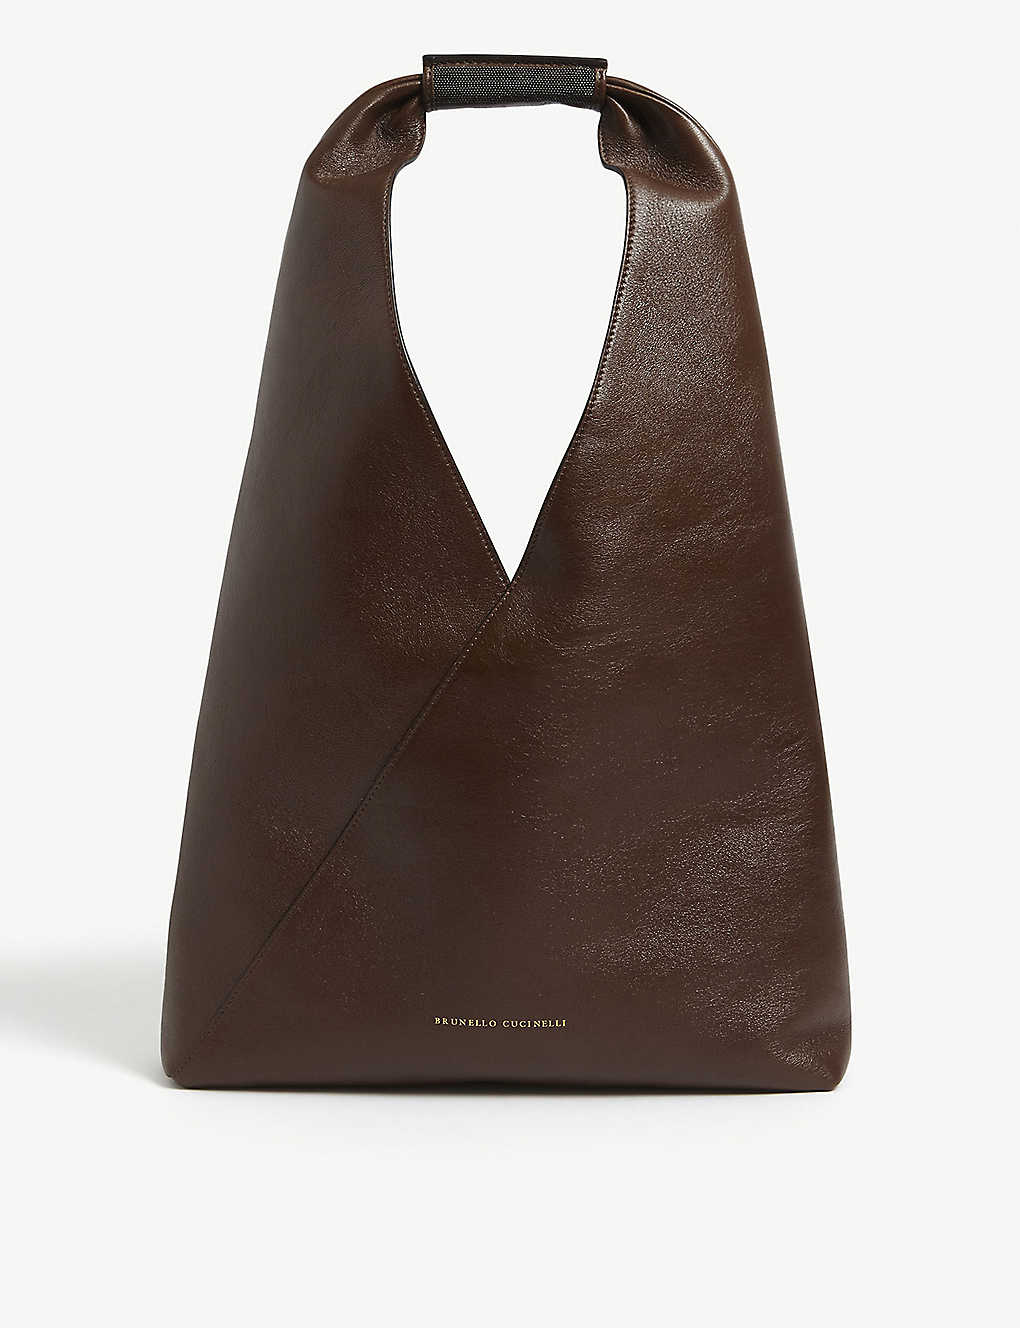 Brunello Cucinelli HOBO SLOUCHY LEATHER BAG